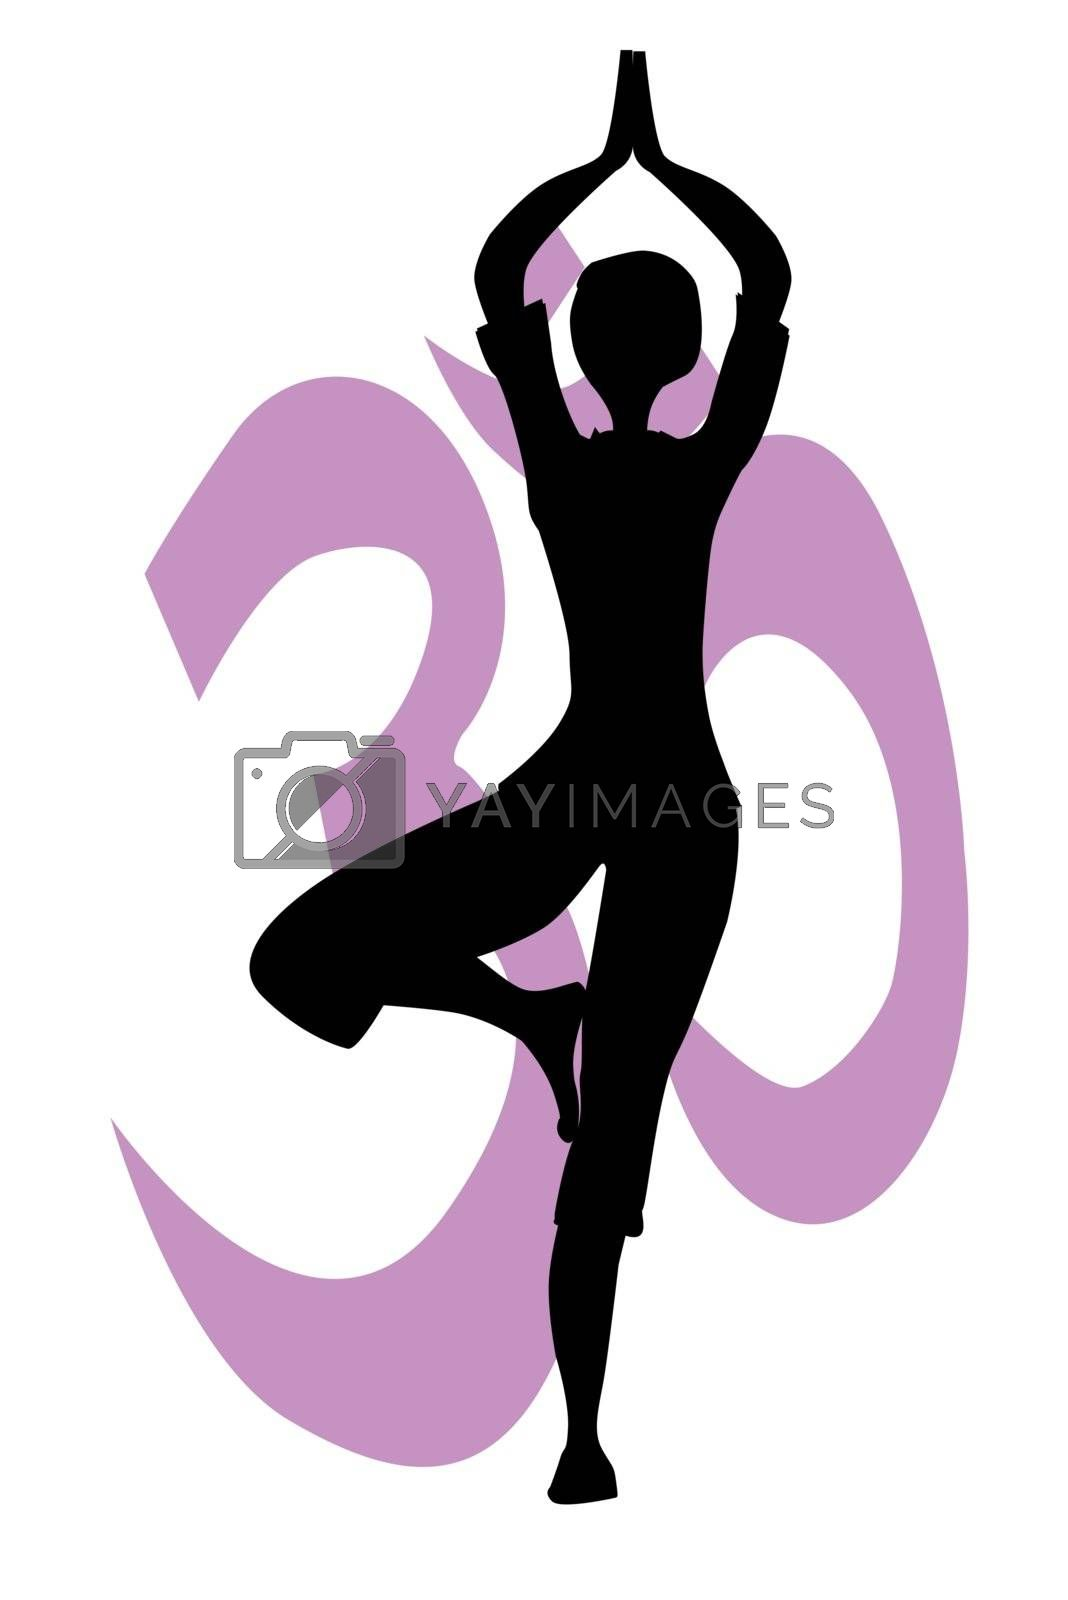 A tree asana posed against n Om sign all isolated on a white background.